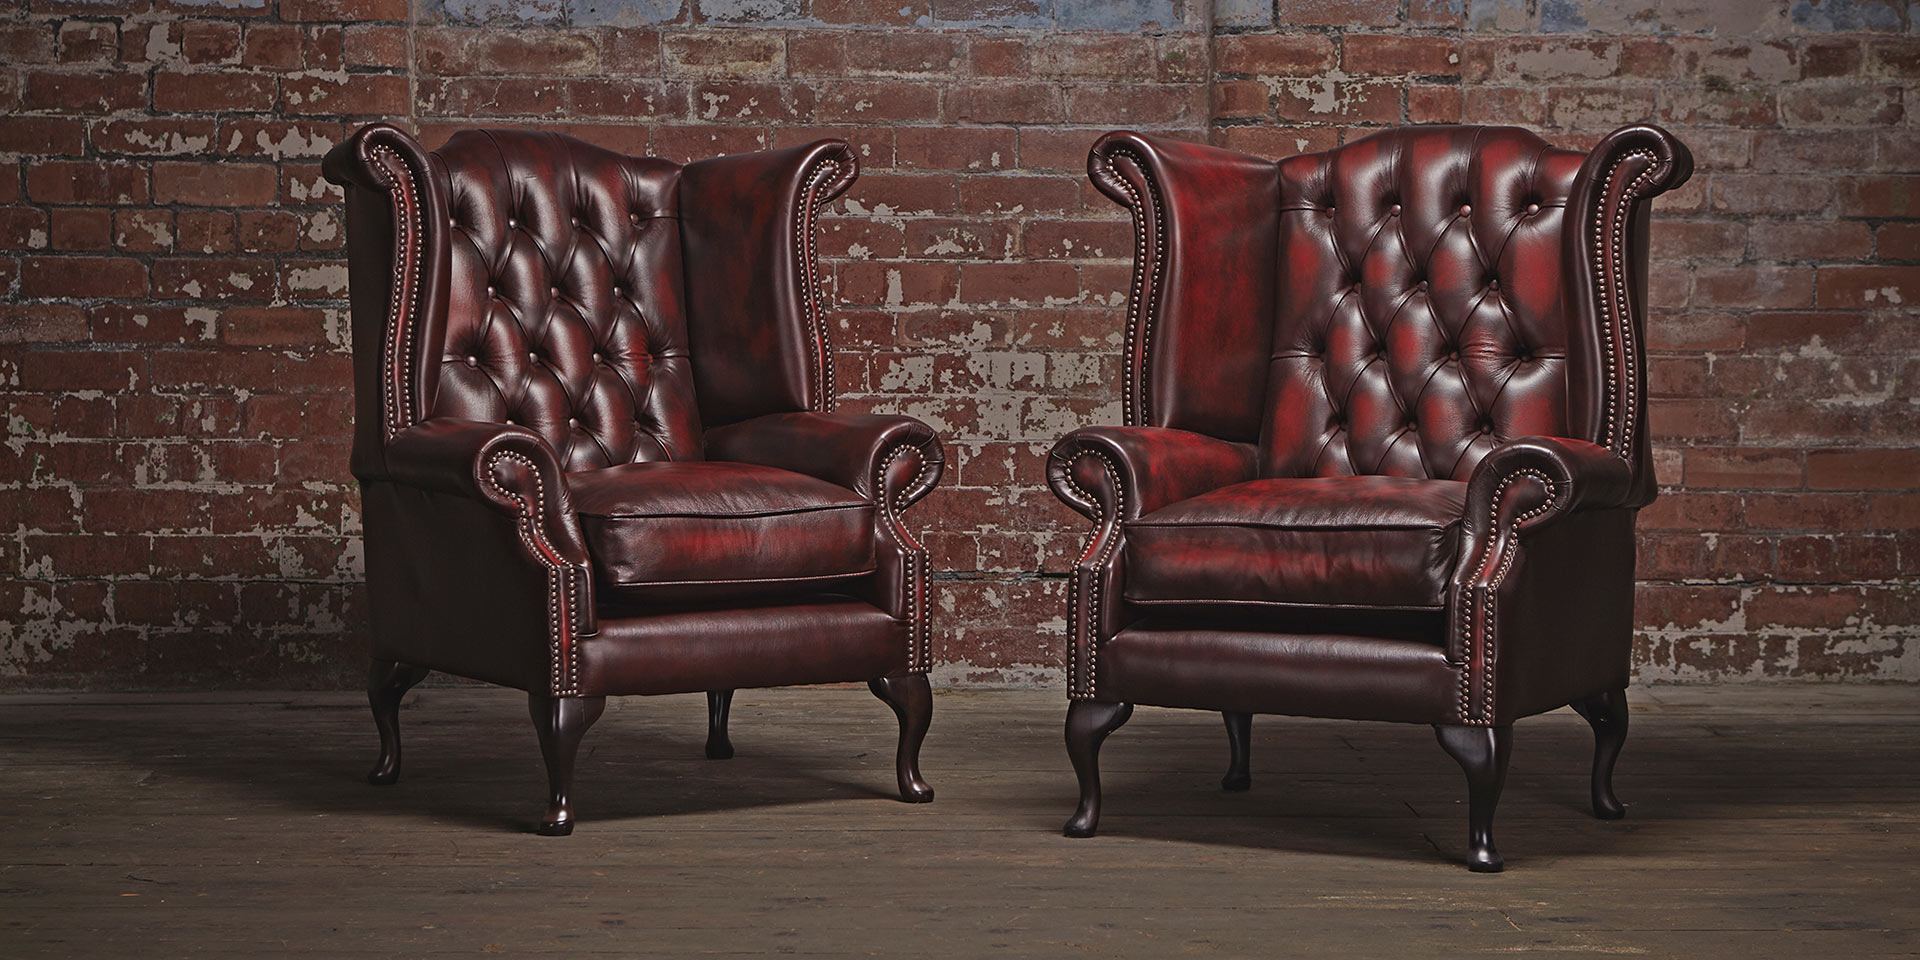 Chesterfield Chair For Rooms' Elegant And Classy Impression (View 13 of 20)